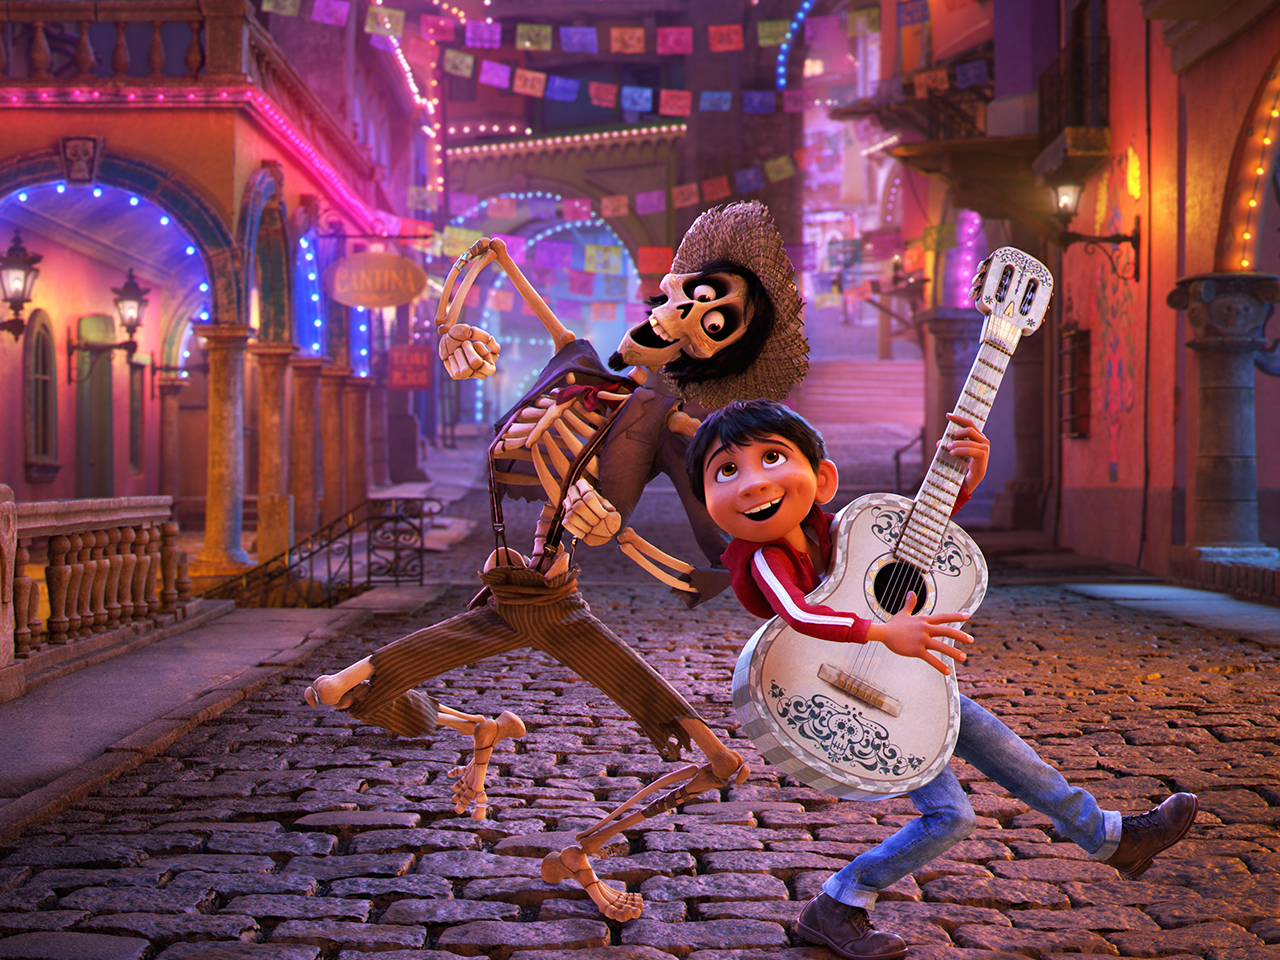 A still from the kids' animated movie Coco